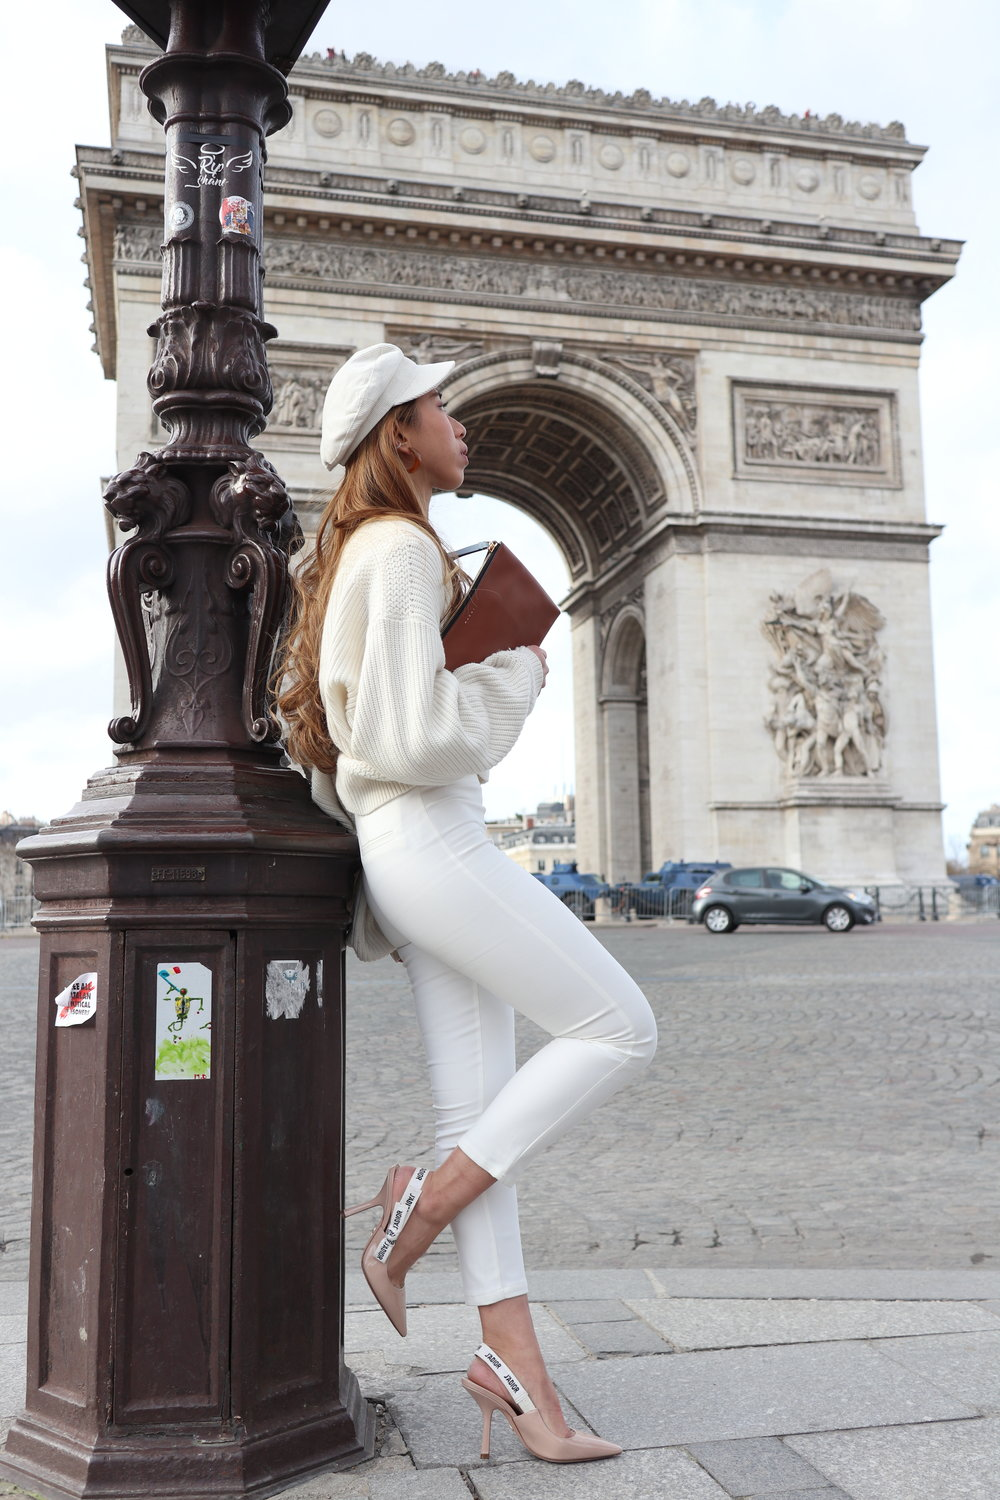 & OTHER STORIES cropped cardigan (white)  /  CASPIA LILI Ian pants  /  DIOR slingback in nude patent calfskin leather  /  ASOS DESIGN wedding braces in navy and white stripe  /  LACKOFCOLOR dunes cap  /  MARNI clutch in leather